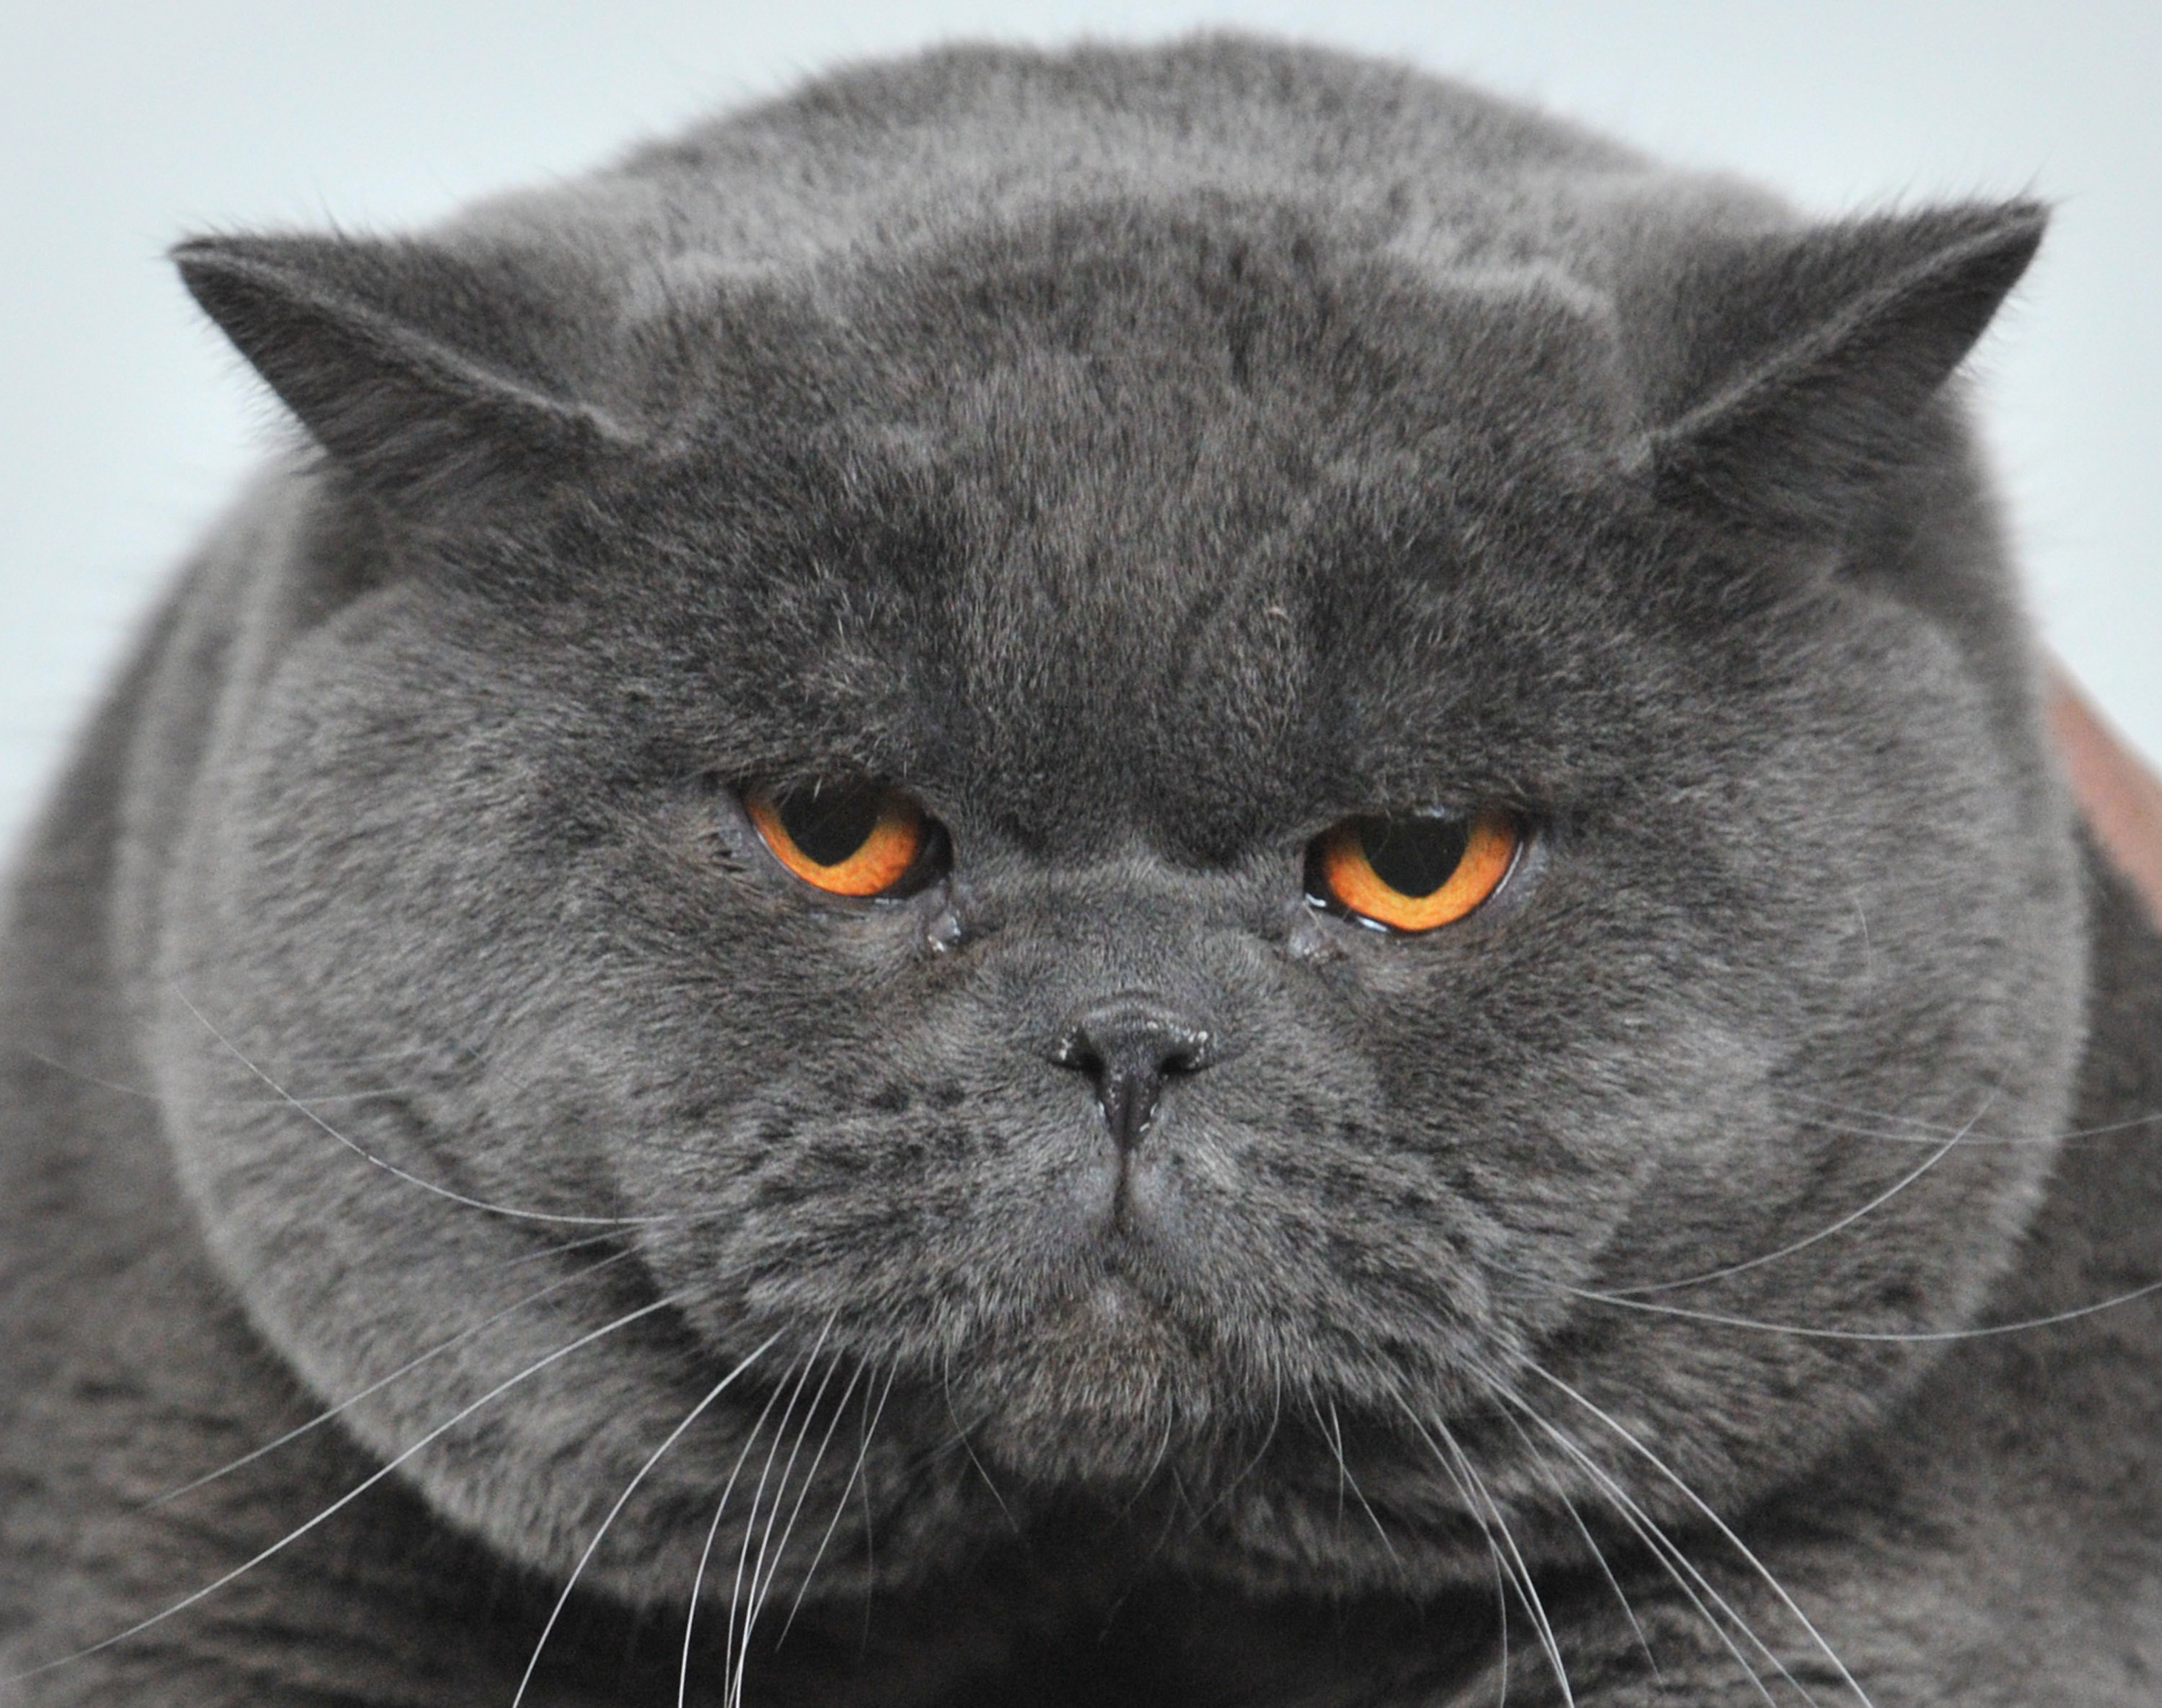 A British Shorthair cat.